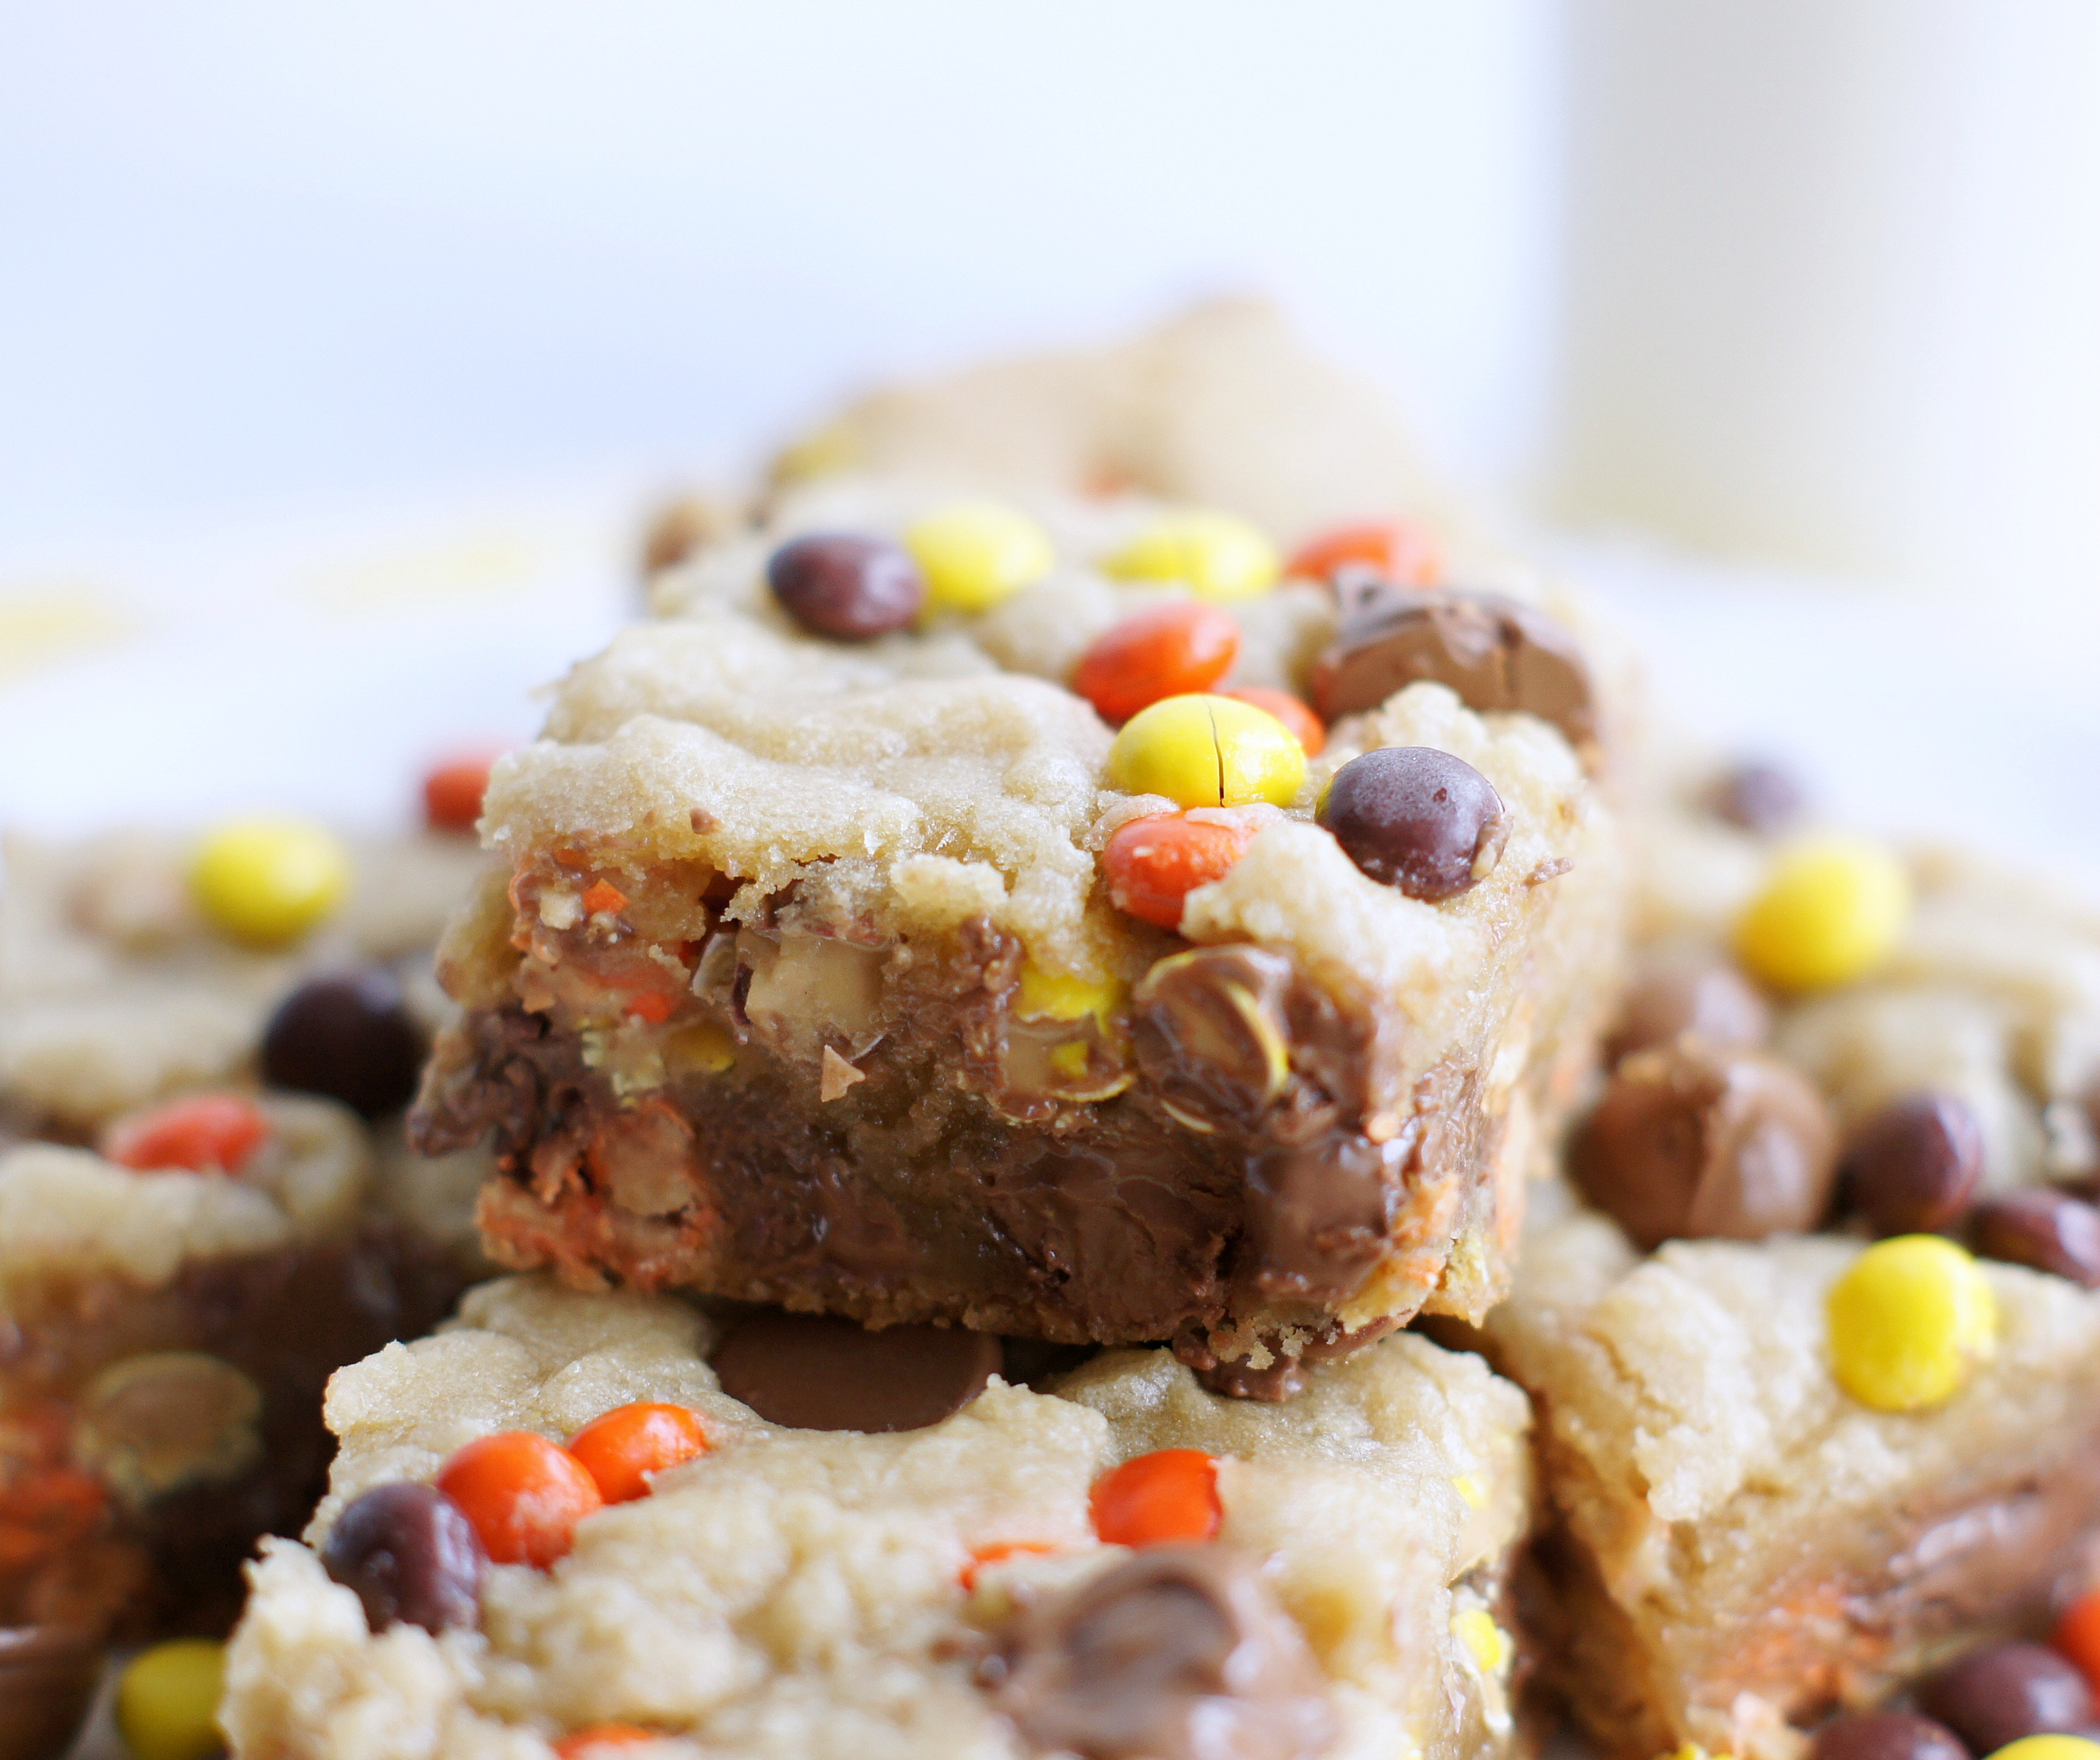 Reese's Pieces Chocolate Chip Bars - 5BoysBaker